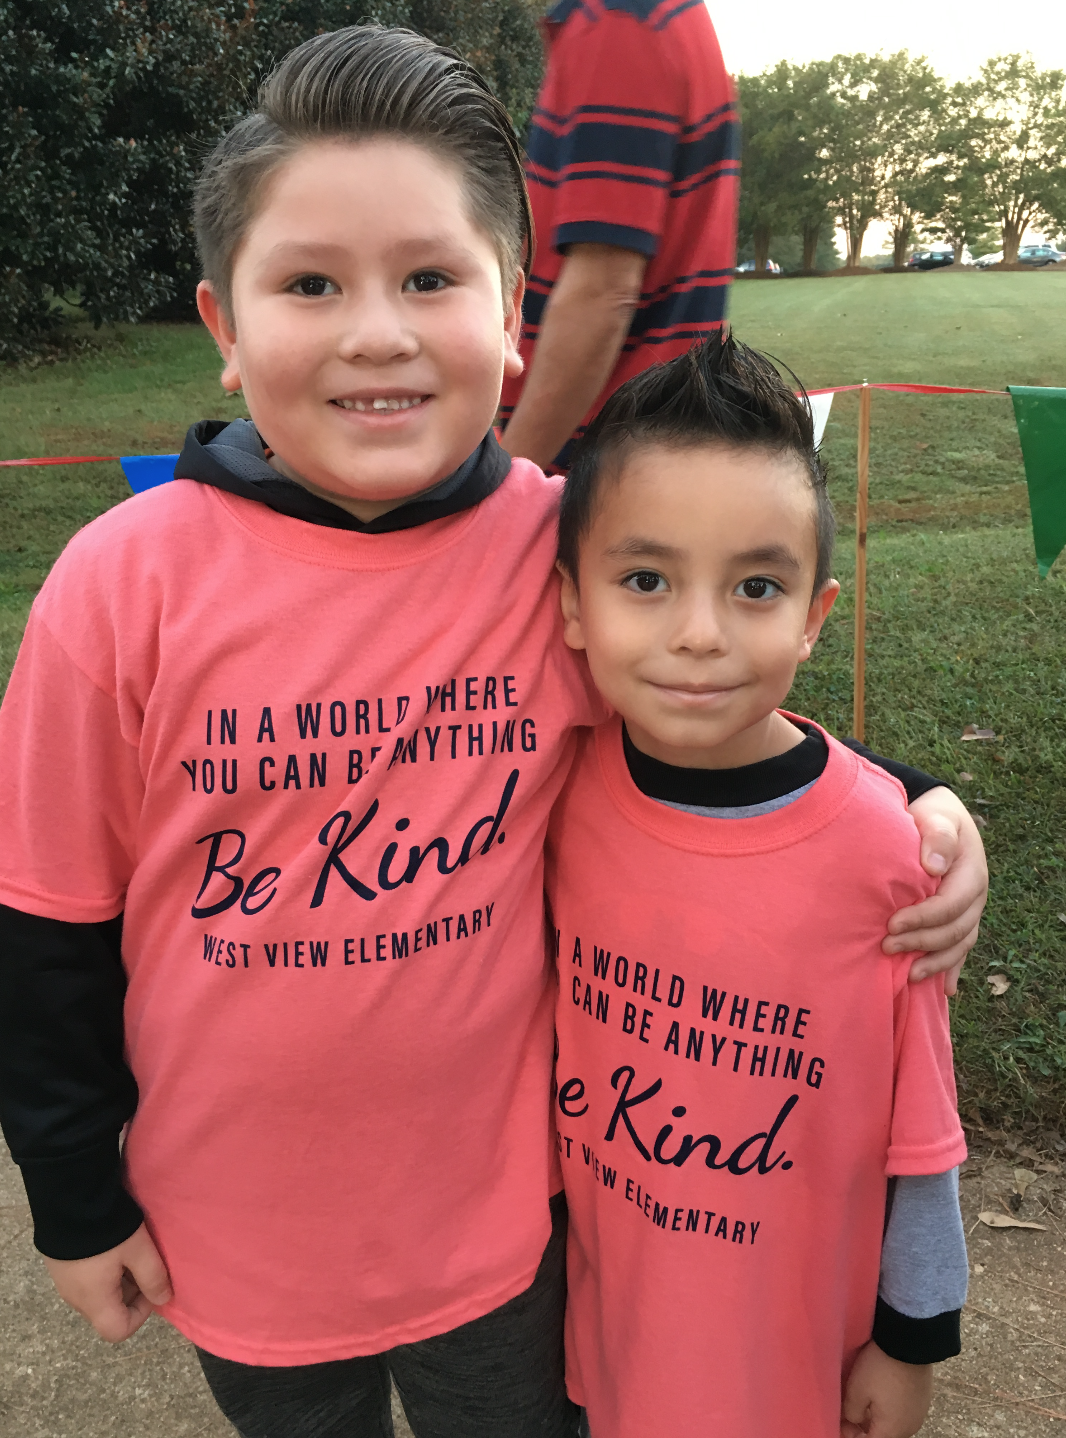 Two students who participated in Walk to School Day